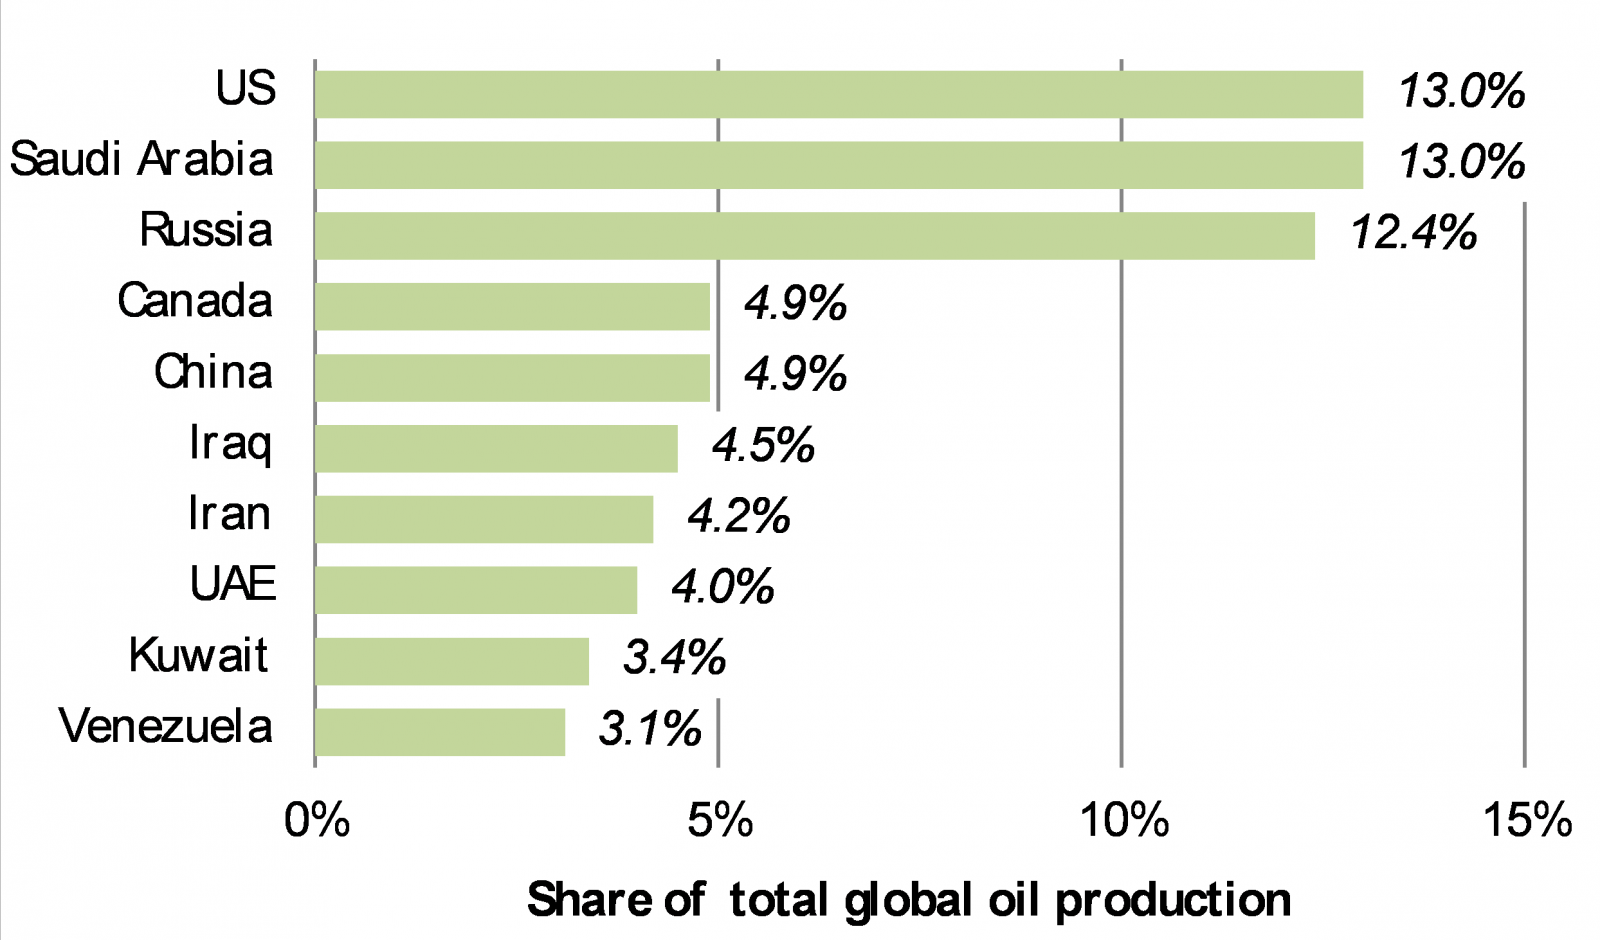 Saudi Arabia and Russia are two of the world's 3 largest oil producers